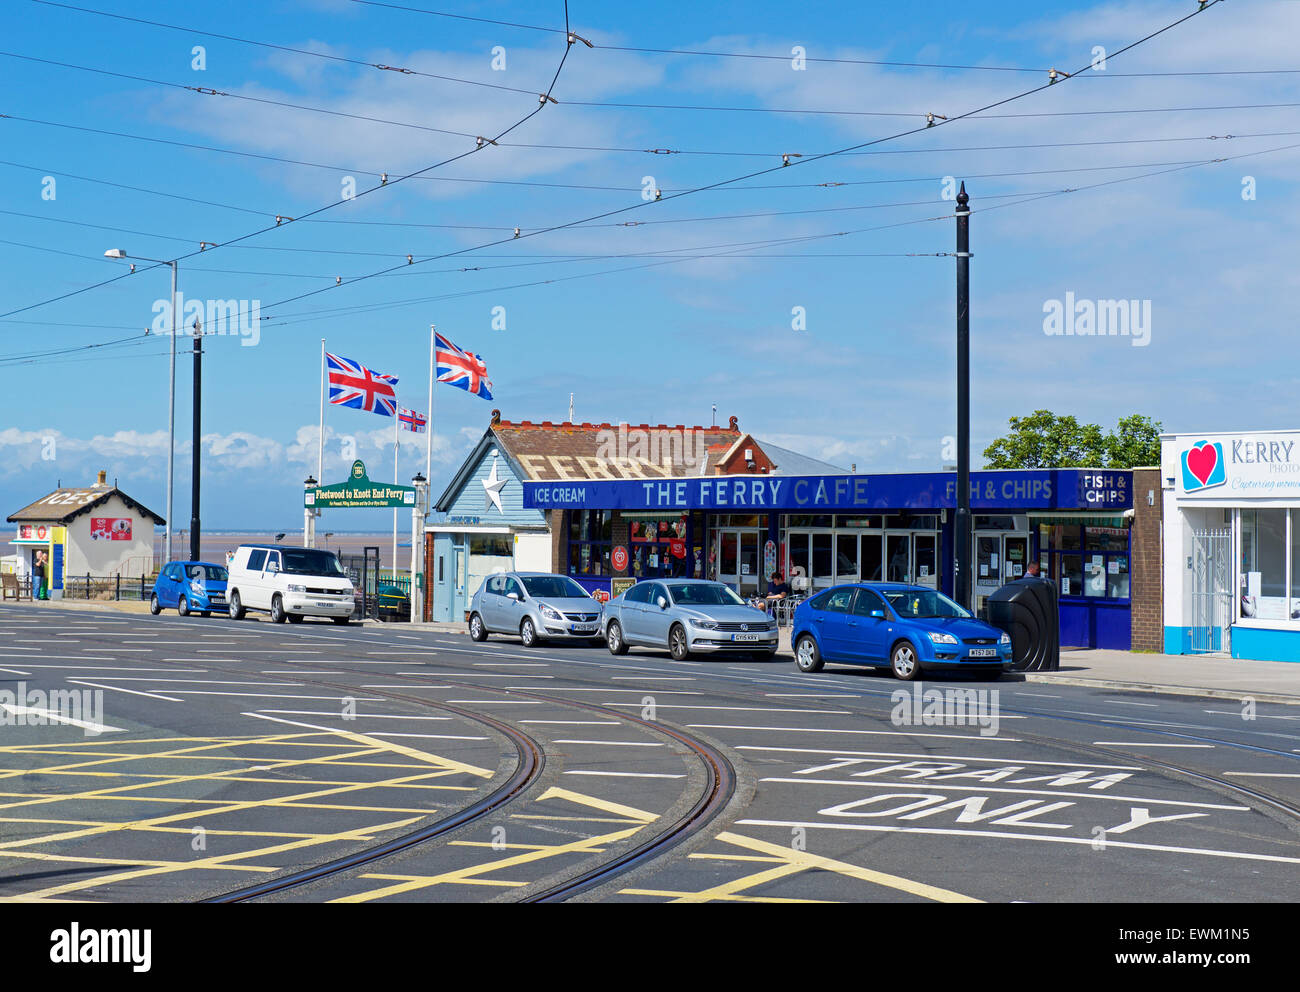 Tram tracks, Fleetwood, Lancashire, England UK - Stock Image